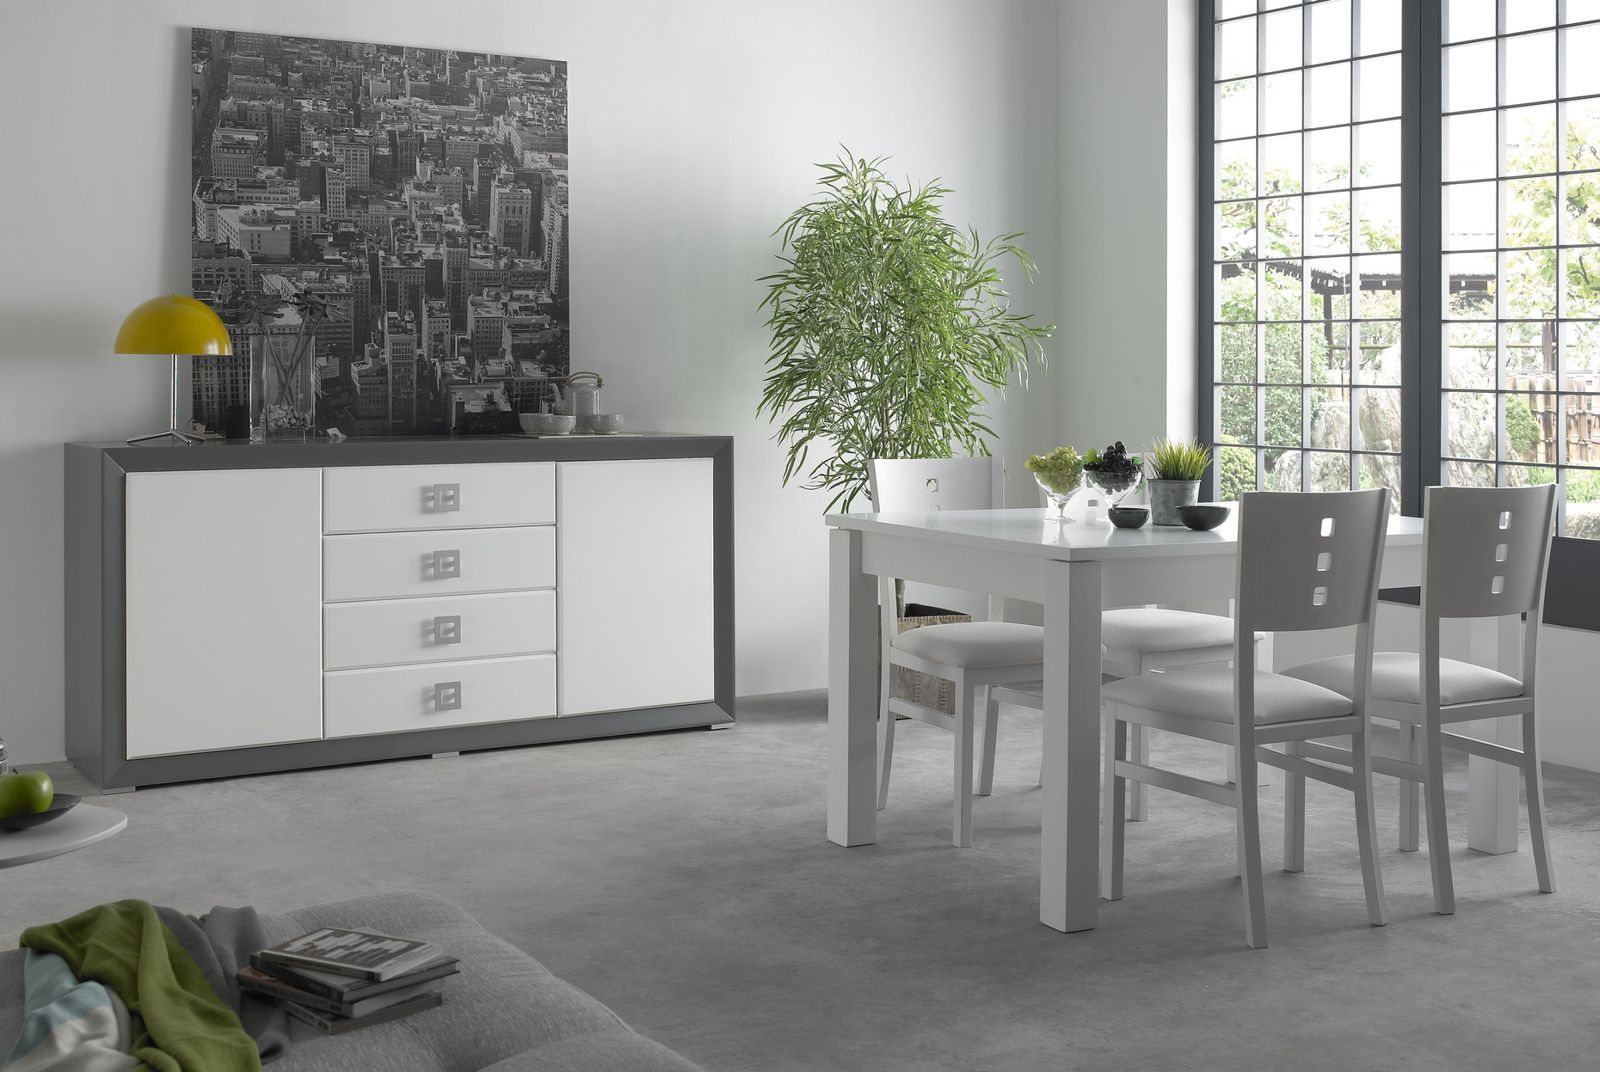 Album meubles laques exodia home design tables ceramique canapes salons - Meuble salon modulable ...